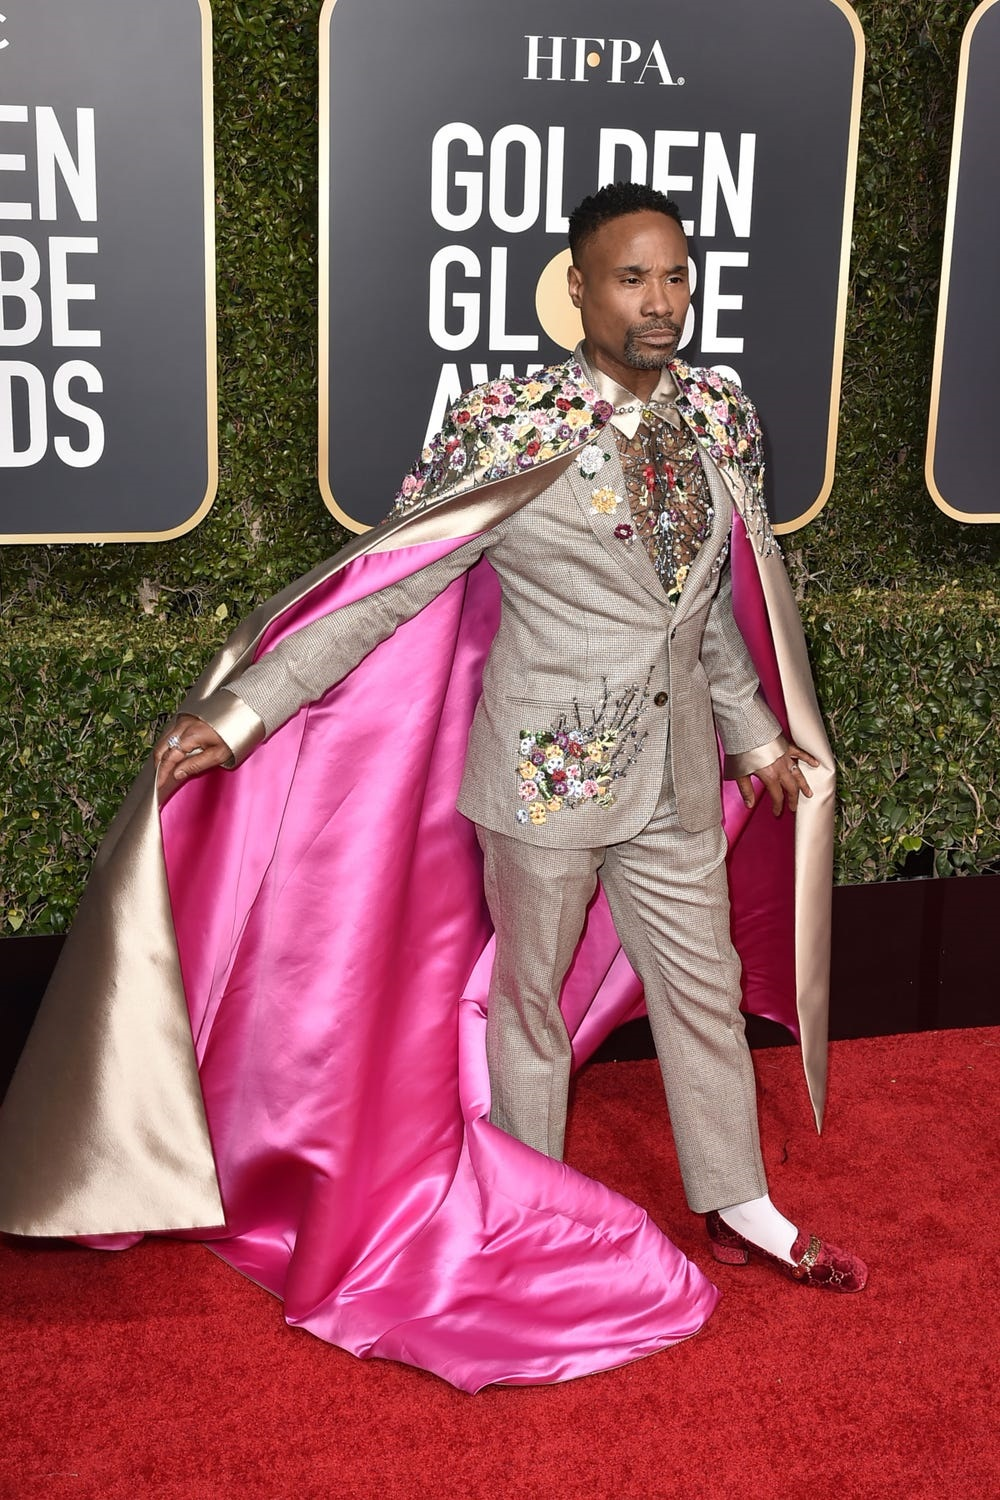 Billy Porter at the 2019 Golden Globes wearing a decorative taupe suit with outstanding pink cape.